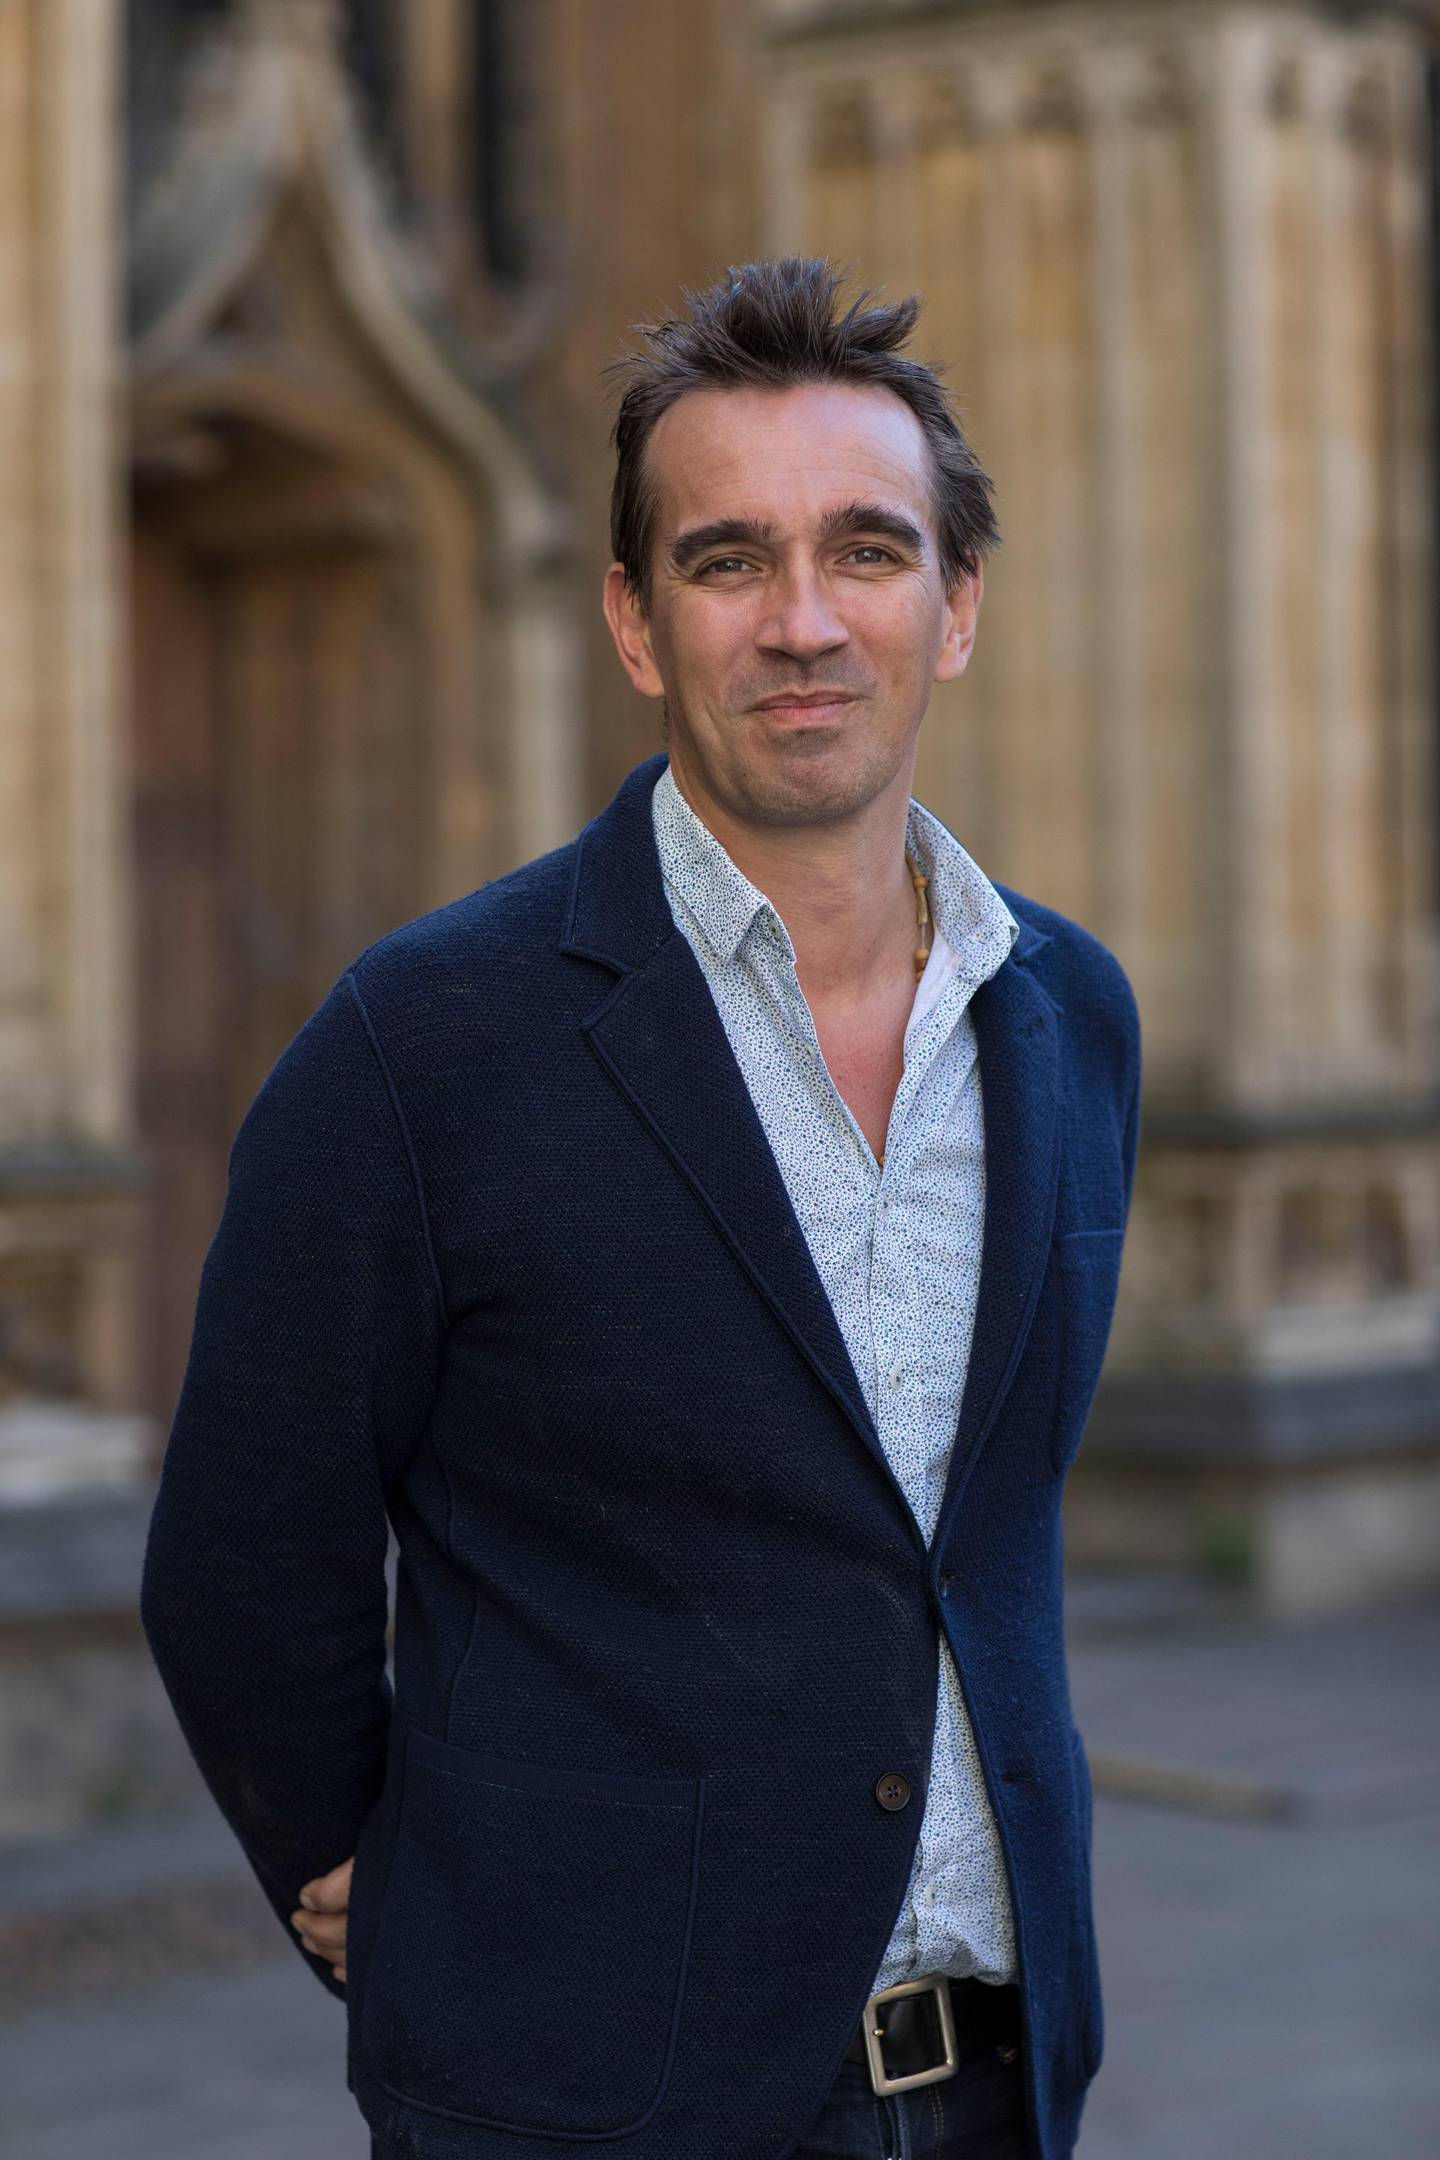 OXFORD, ENGLAND - APRIL 01:  Peter Frankopan, historian and author, at the FT Weekend Oxford Literary Festival on April 1, 2017 in Oxford, England.  (Photo by David Levenson/Getty Images)